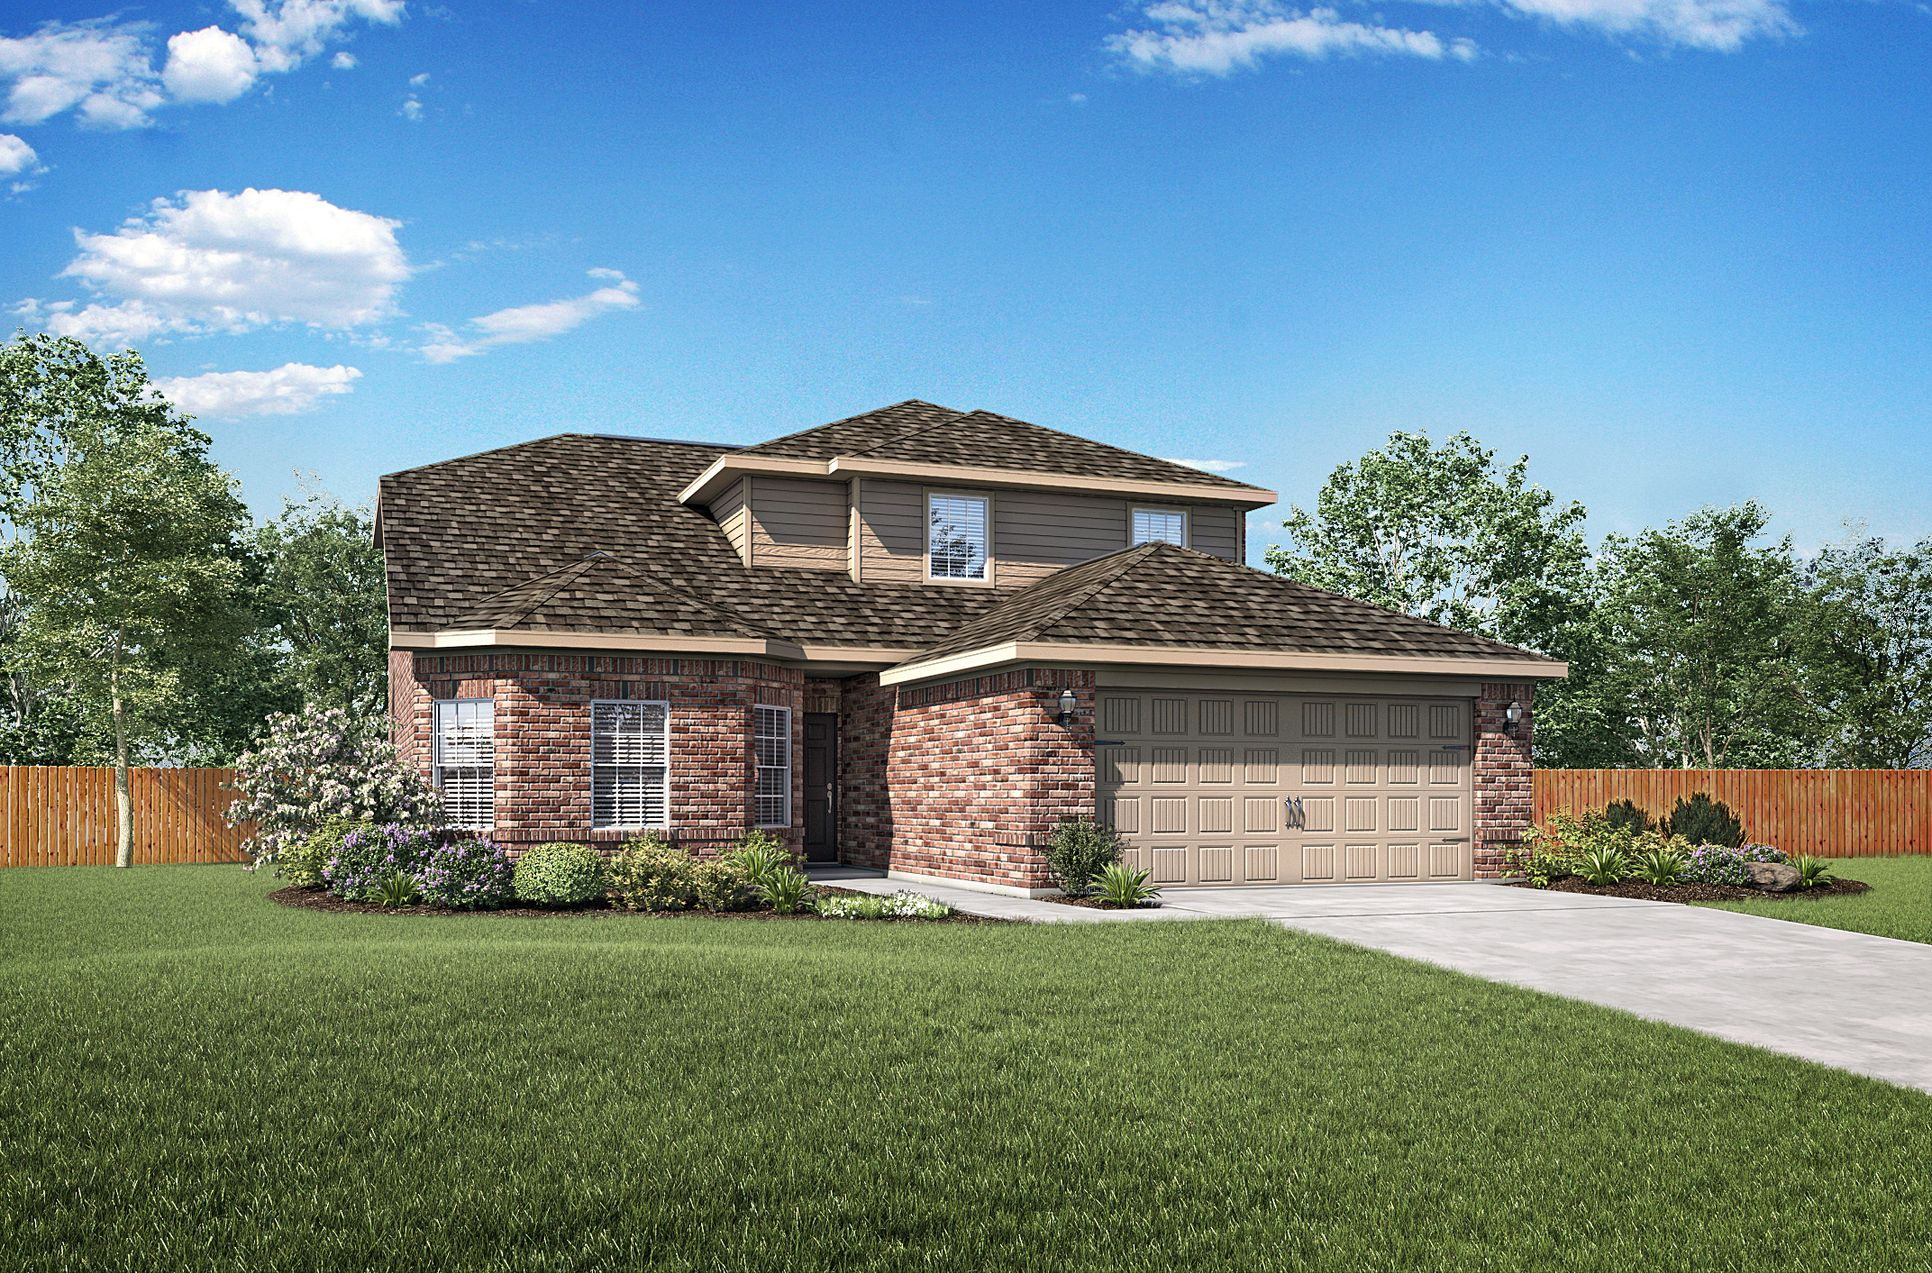 The Cypress Plan by LGI Homes:The Cypress plan has incredible curb appeal!